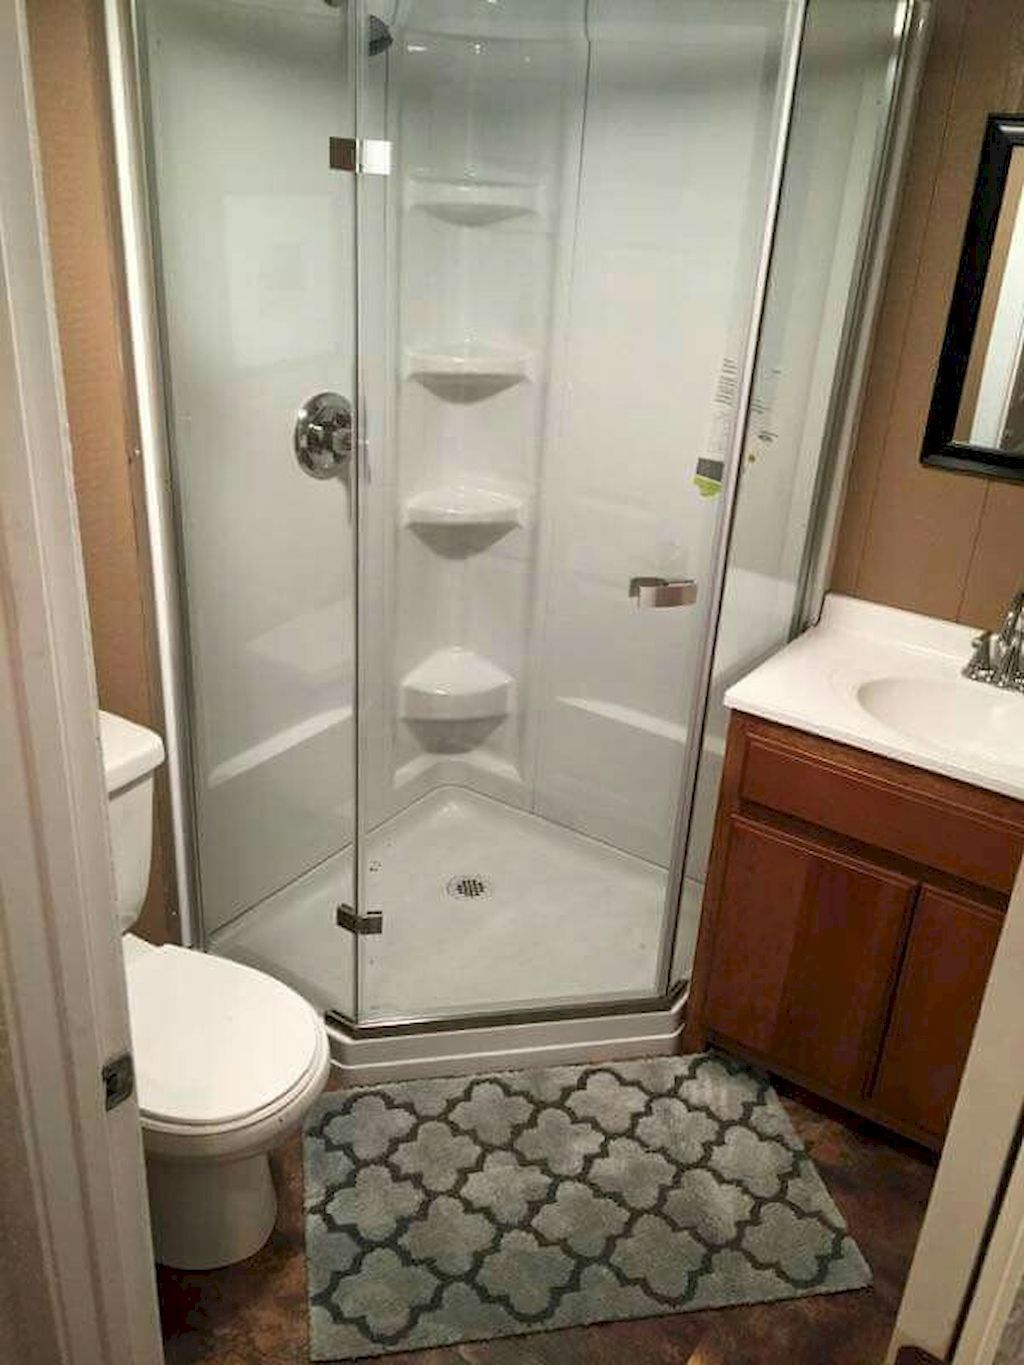 Small Bathroom Designs On A Budget Stunning 75 Simple Tiny Space Bathroom Ideas On A Budget  Tiny Spaces Review